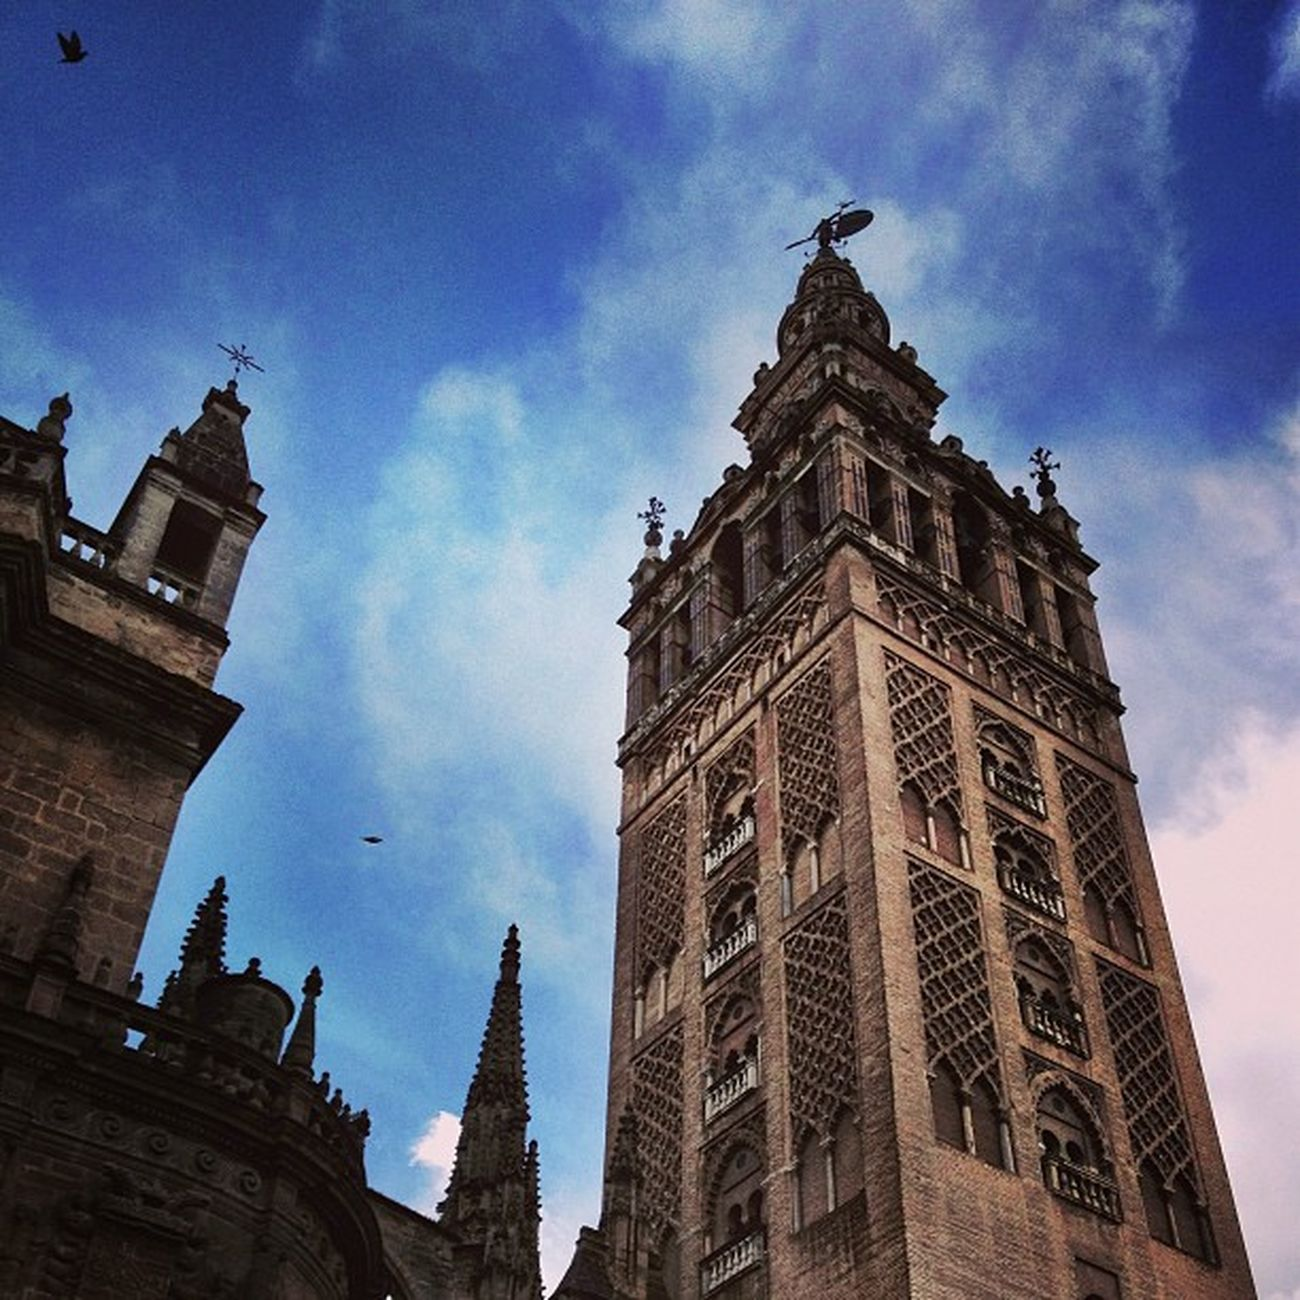 Another capture of Giralda.